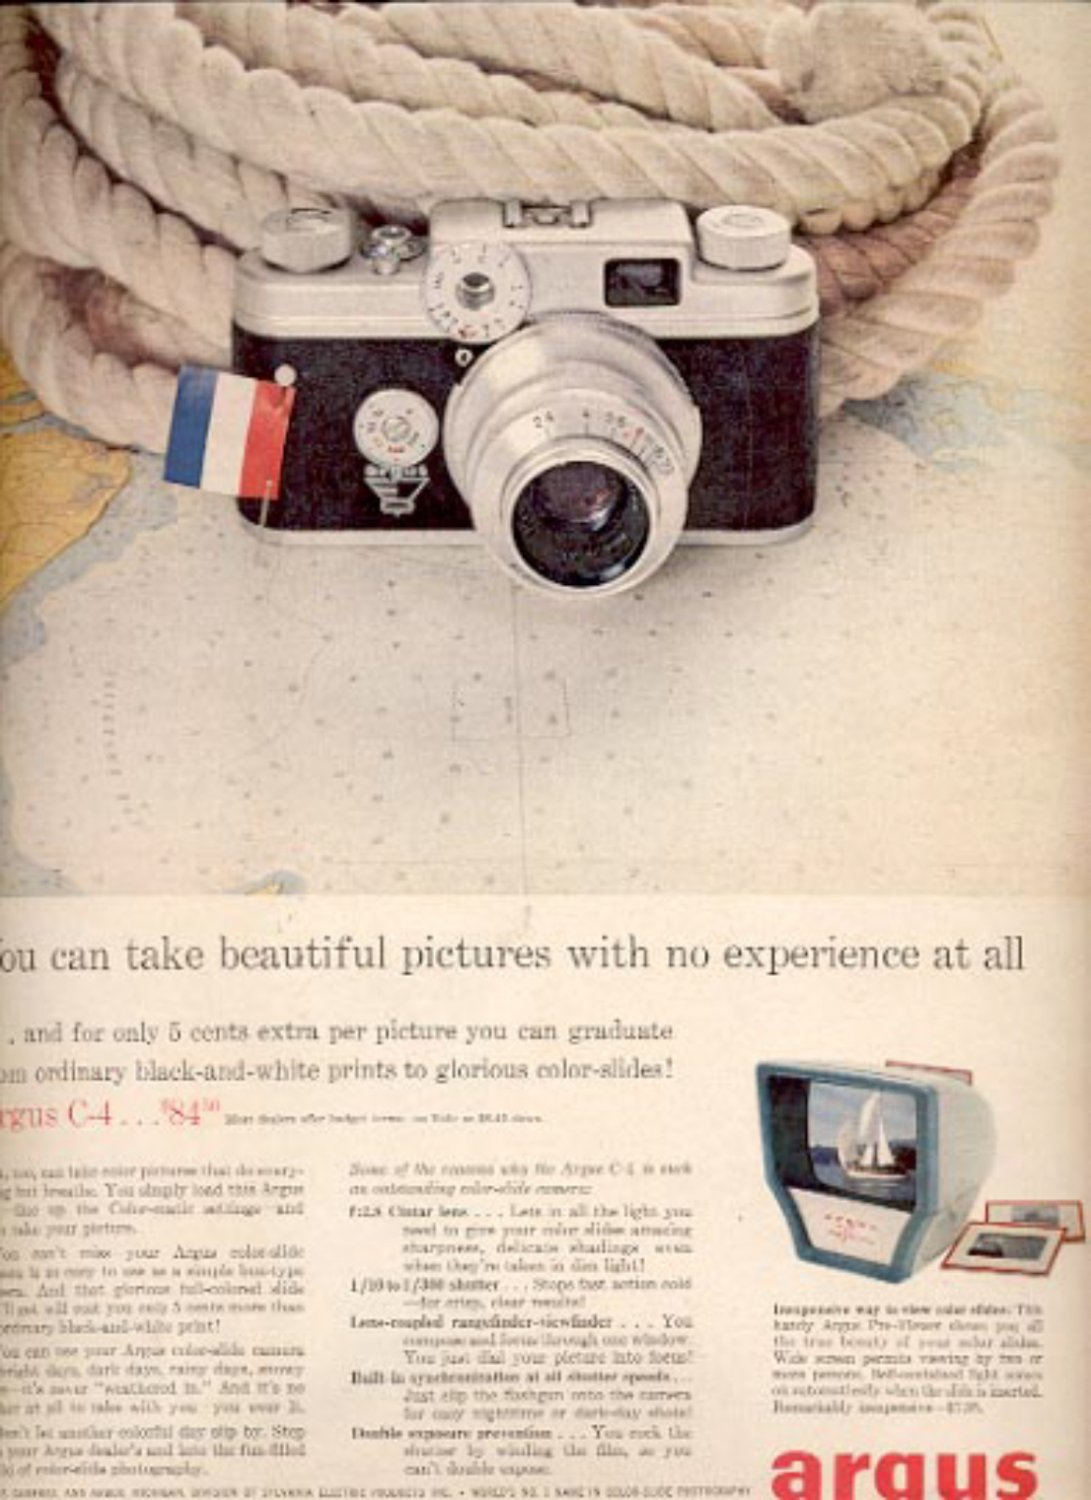 1957 Argus color-slide camera  ad (# 4963)